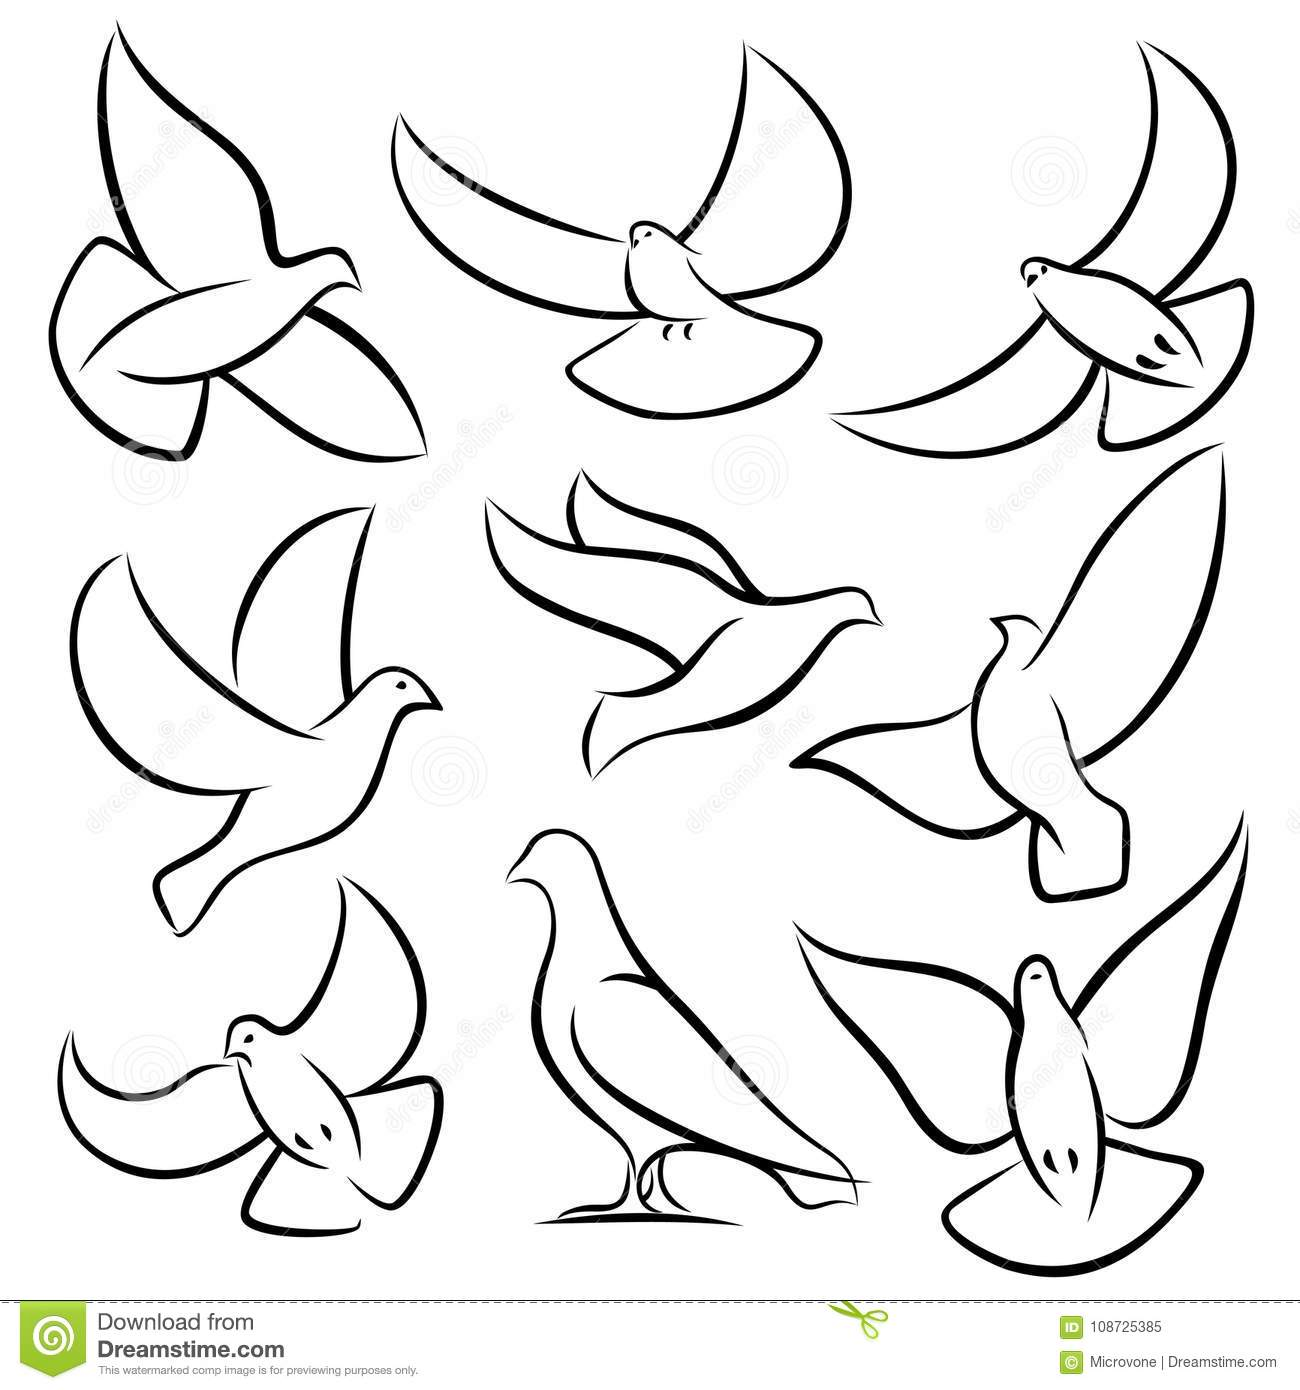 It is a picture of Hilaire Dove Drawing Outline